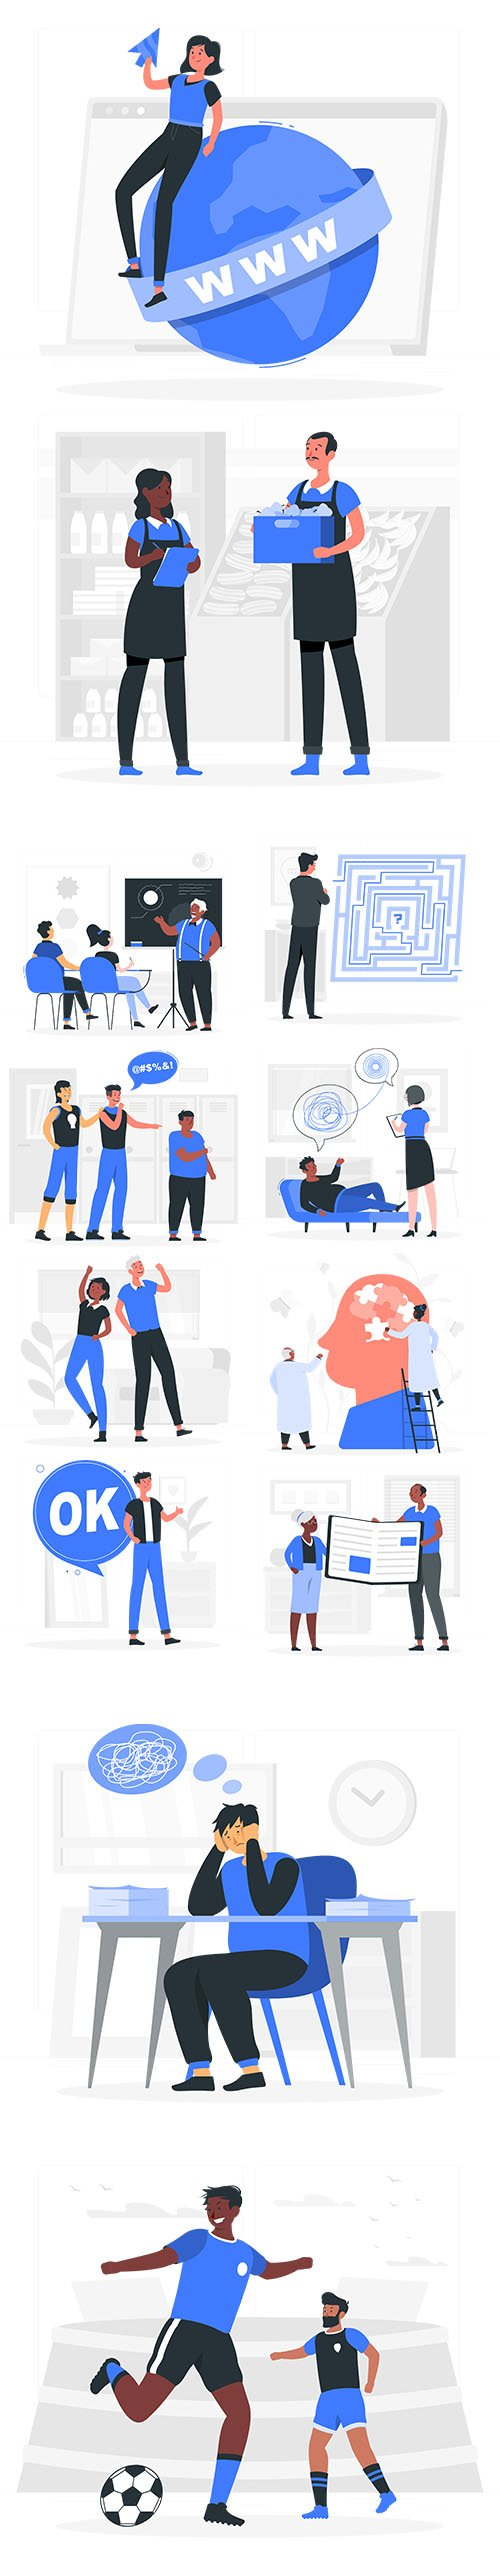 Vector Business and Live People Situations Illustrations